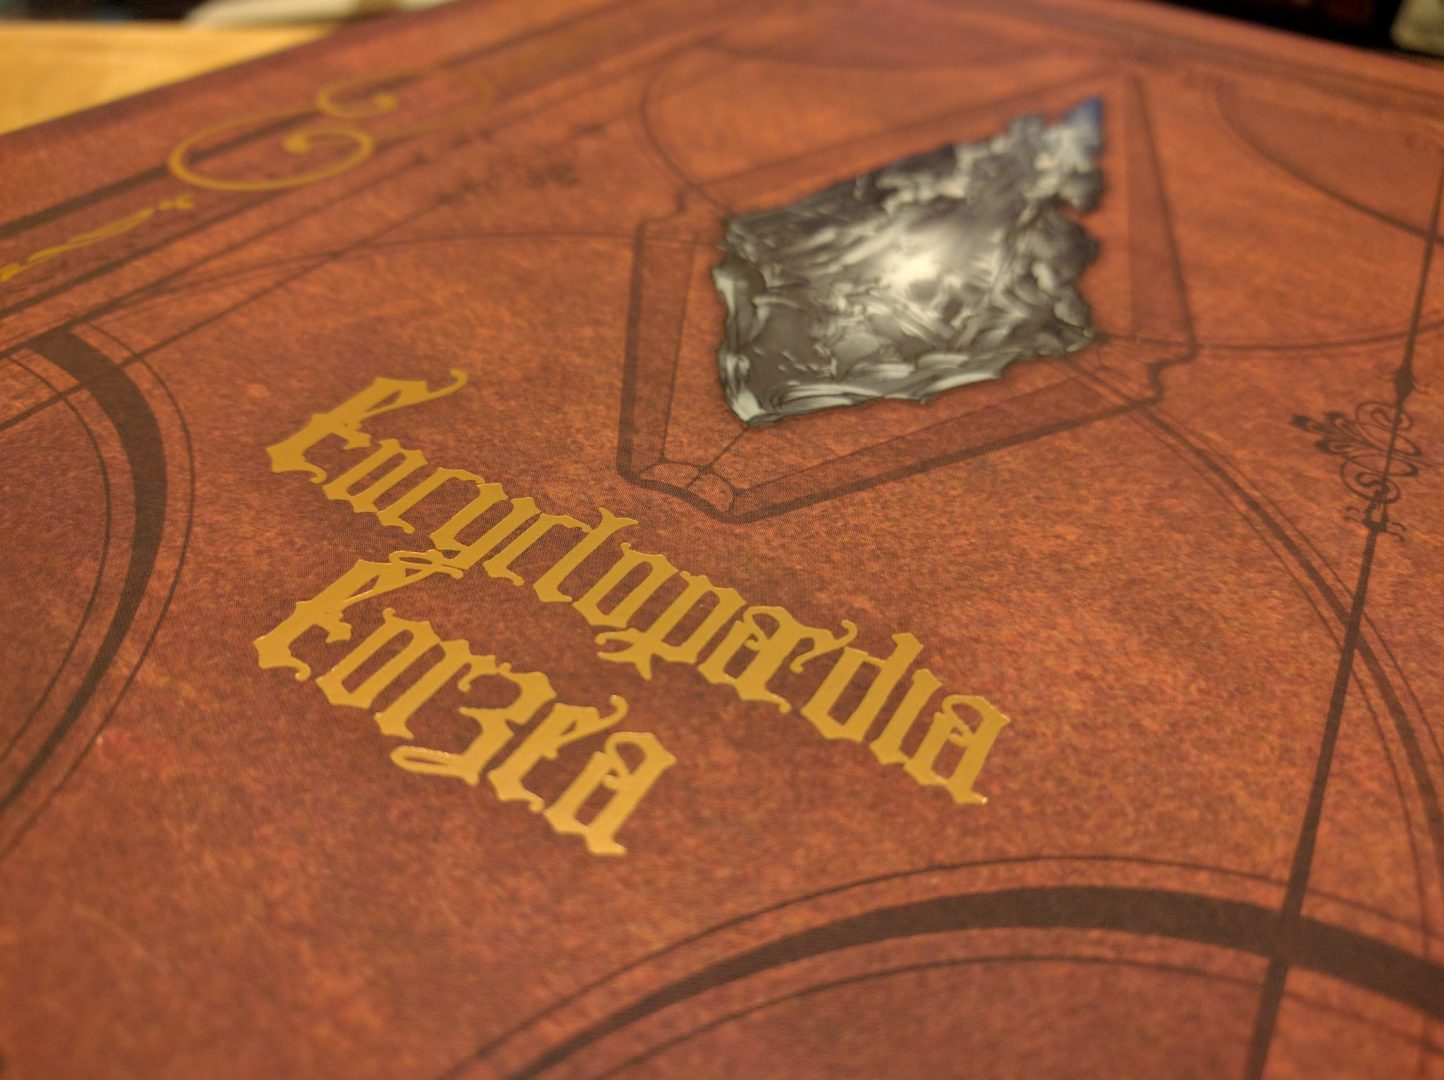 All about Final Fantasy 14's Encyclopaedia Eorzea (plus a cool giveaway!)